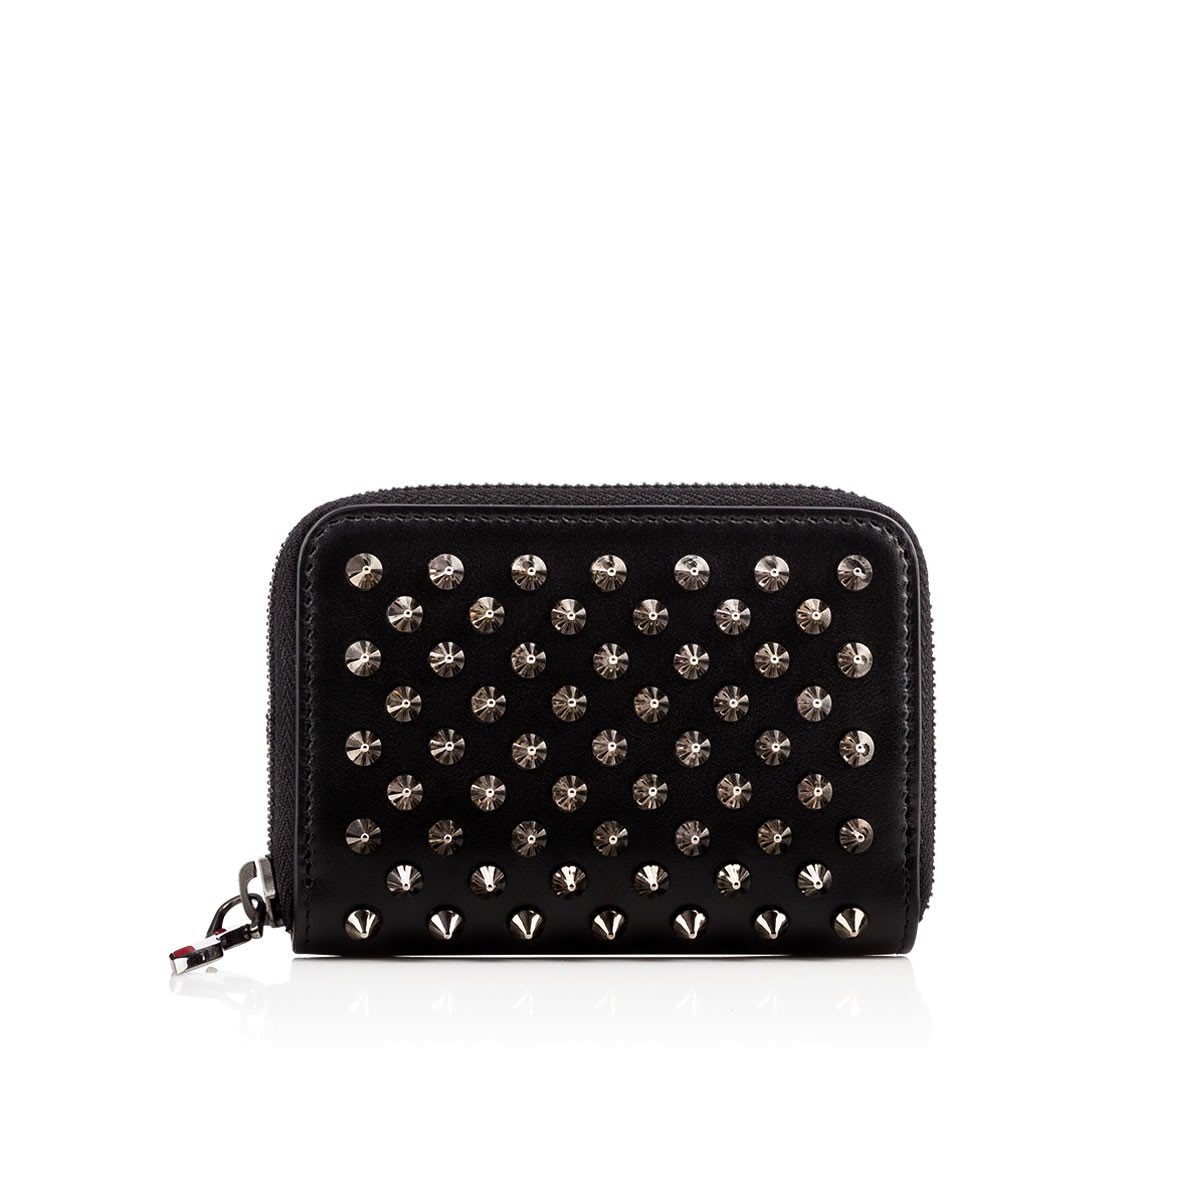 Panettone Spike-Embellished Leather Coin Purse, Black